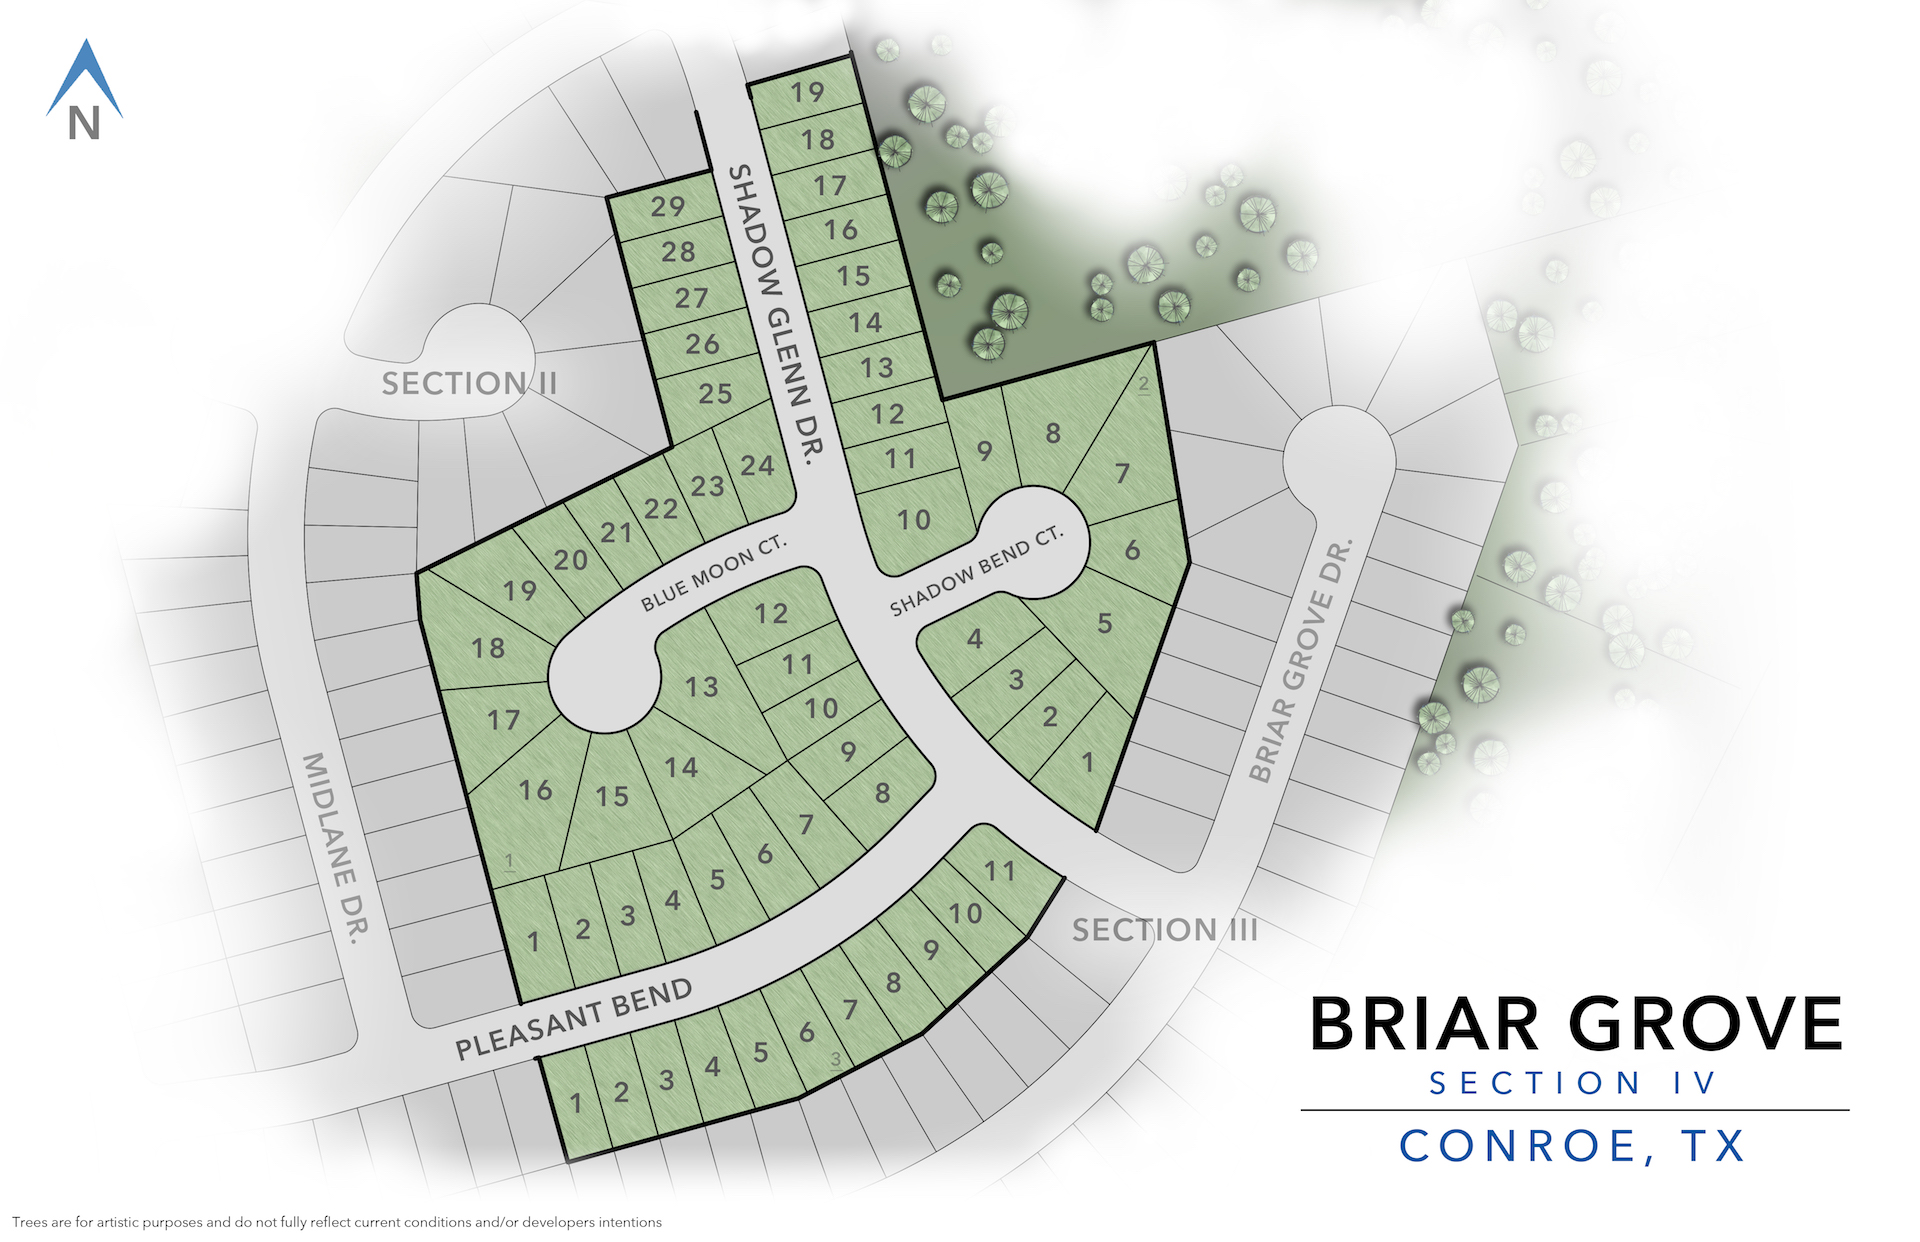 Conroe, TX Briar Grove New Homes from Stylecraft Builders